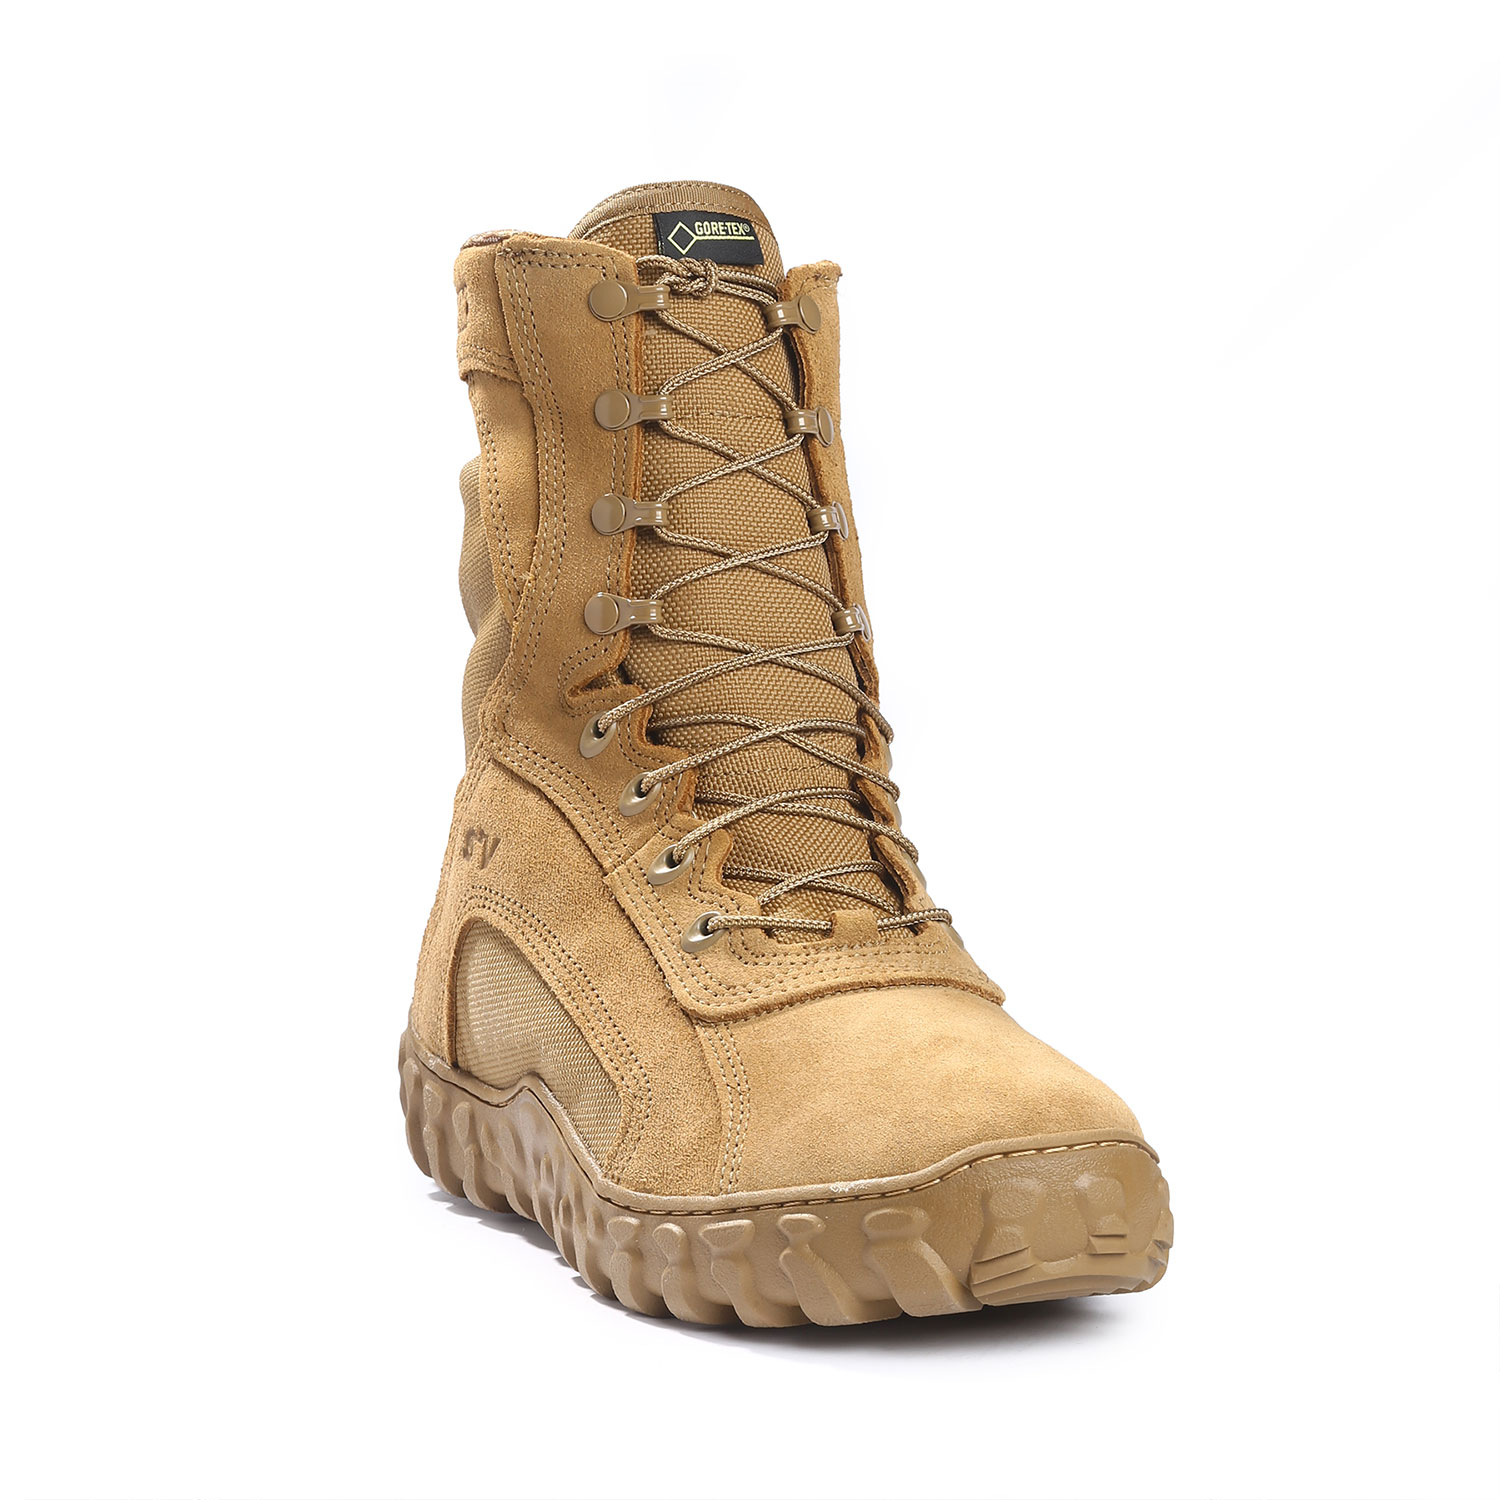 Rocky S2v Gore Tex Waterproof 400g Insulated Military Boot